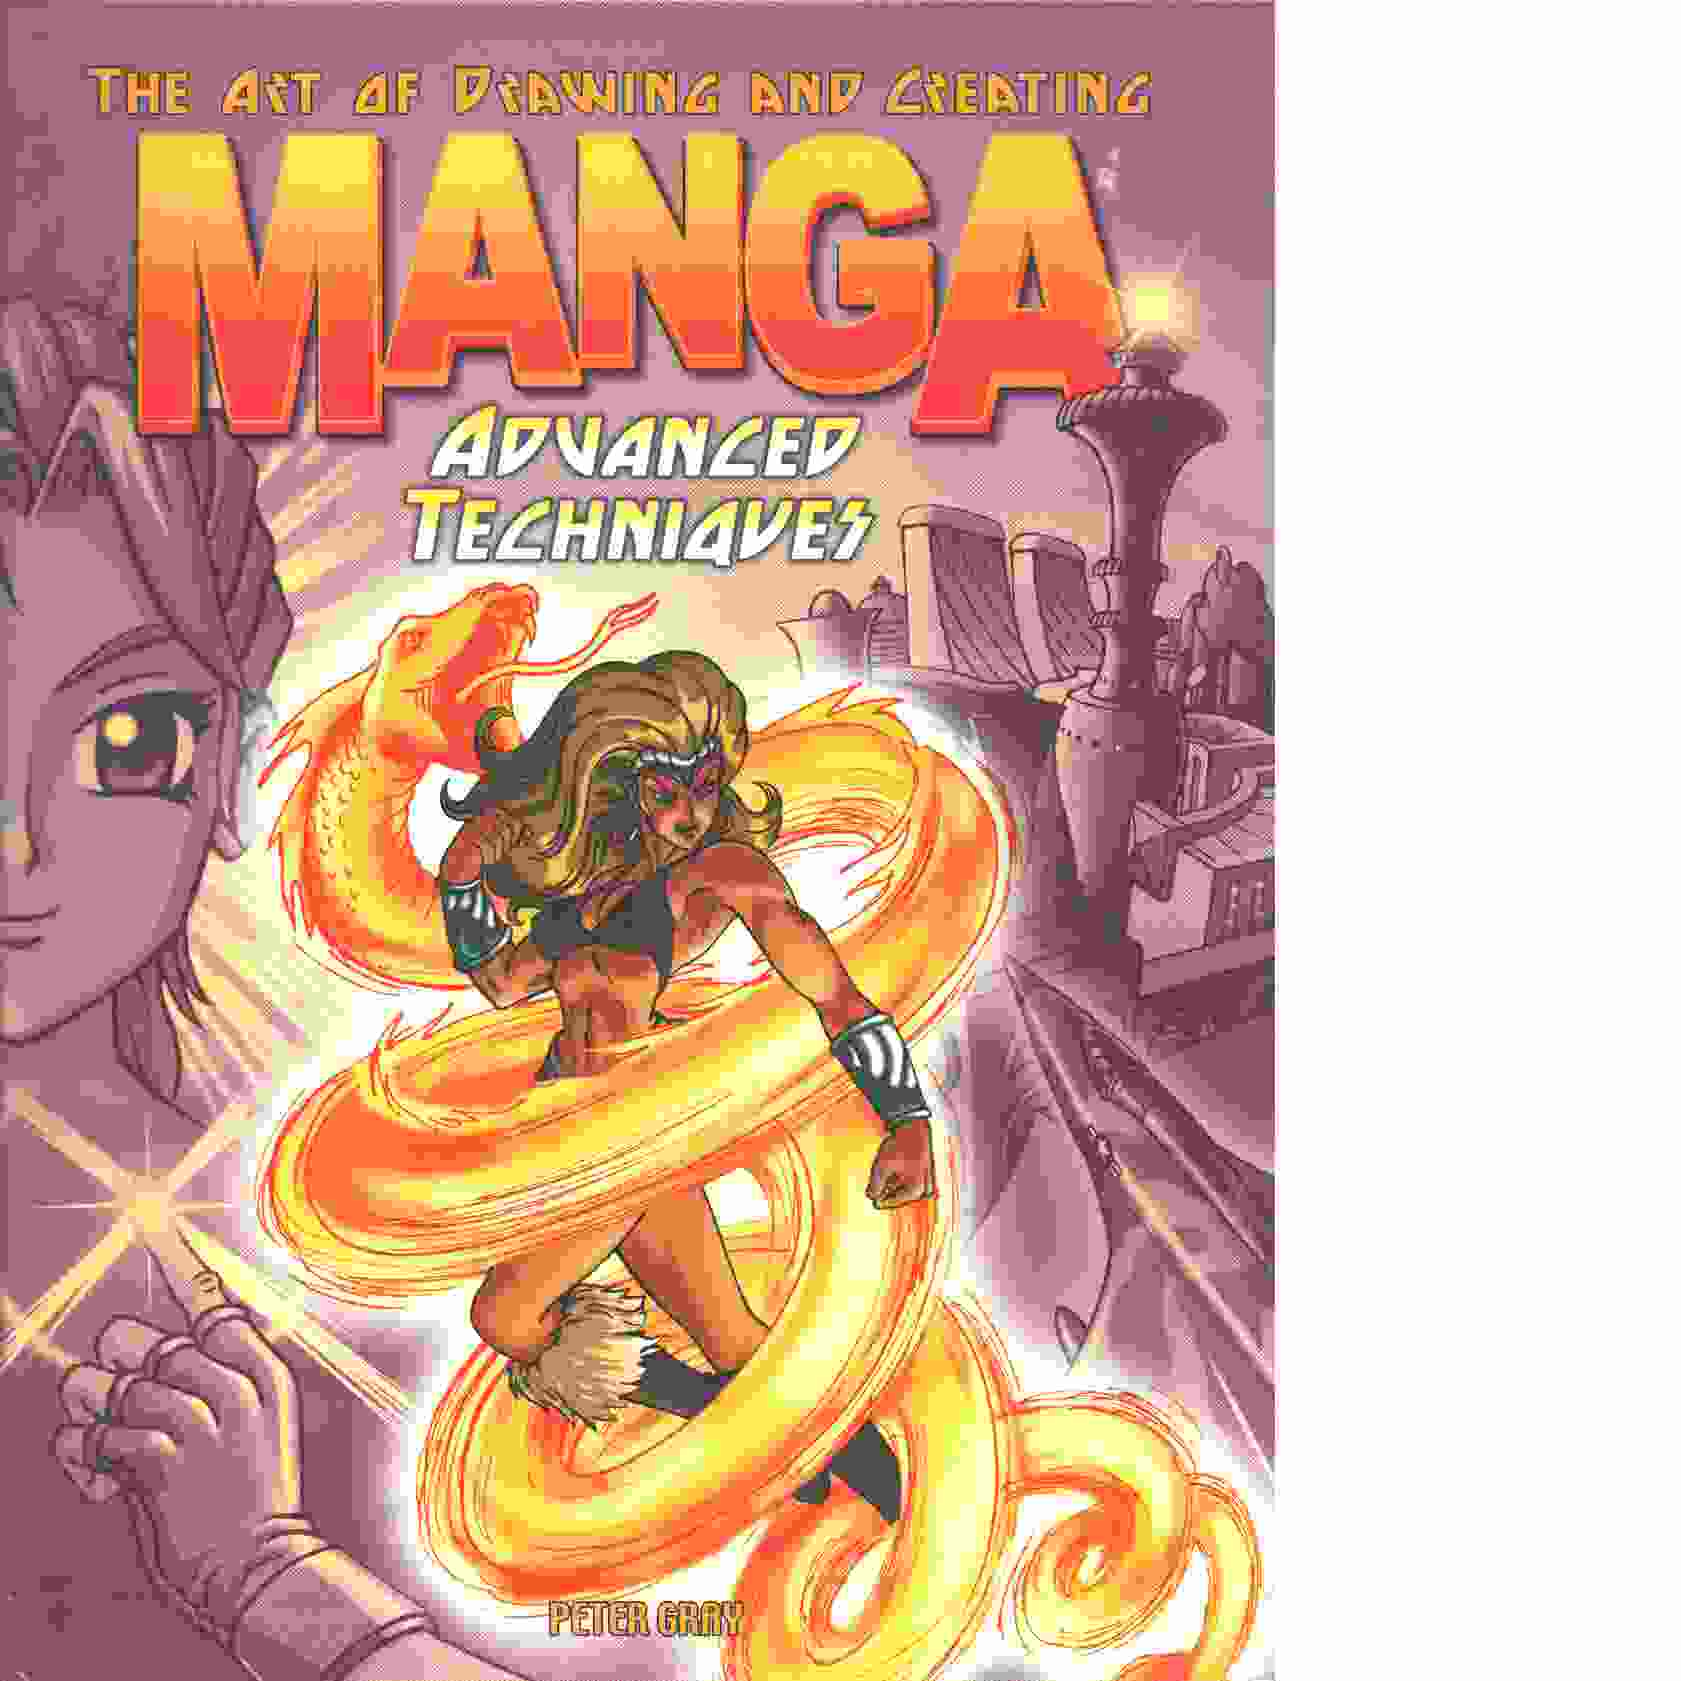 The Art of Drawing and Creating Manga Advanced Techniques - Gray, Peter